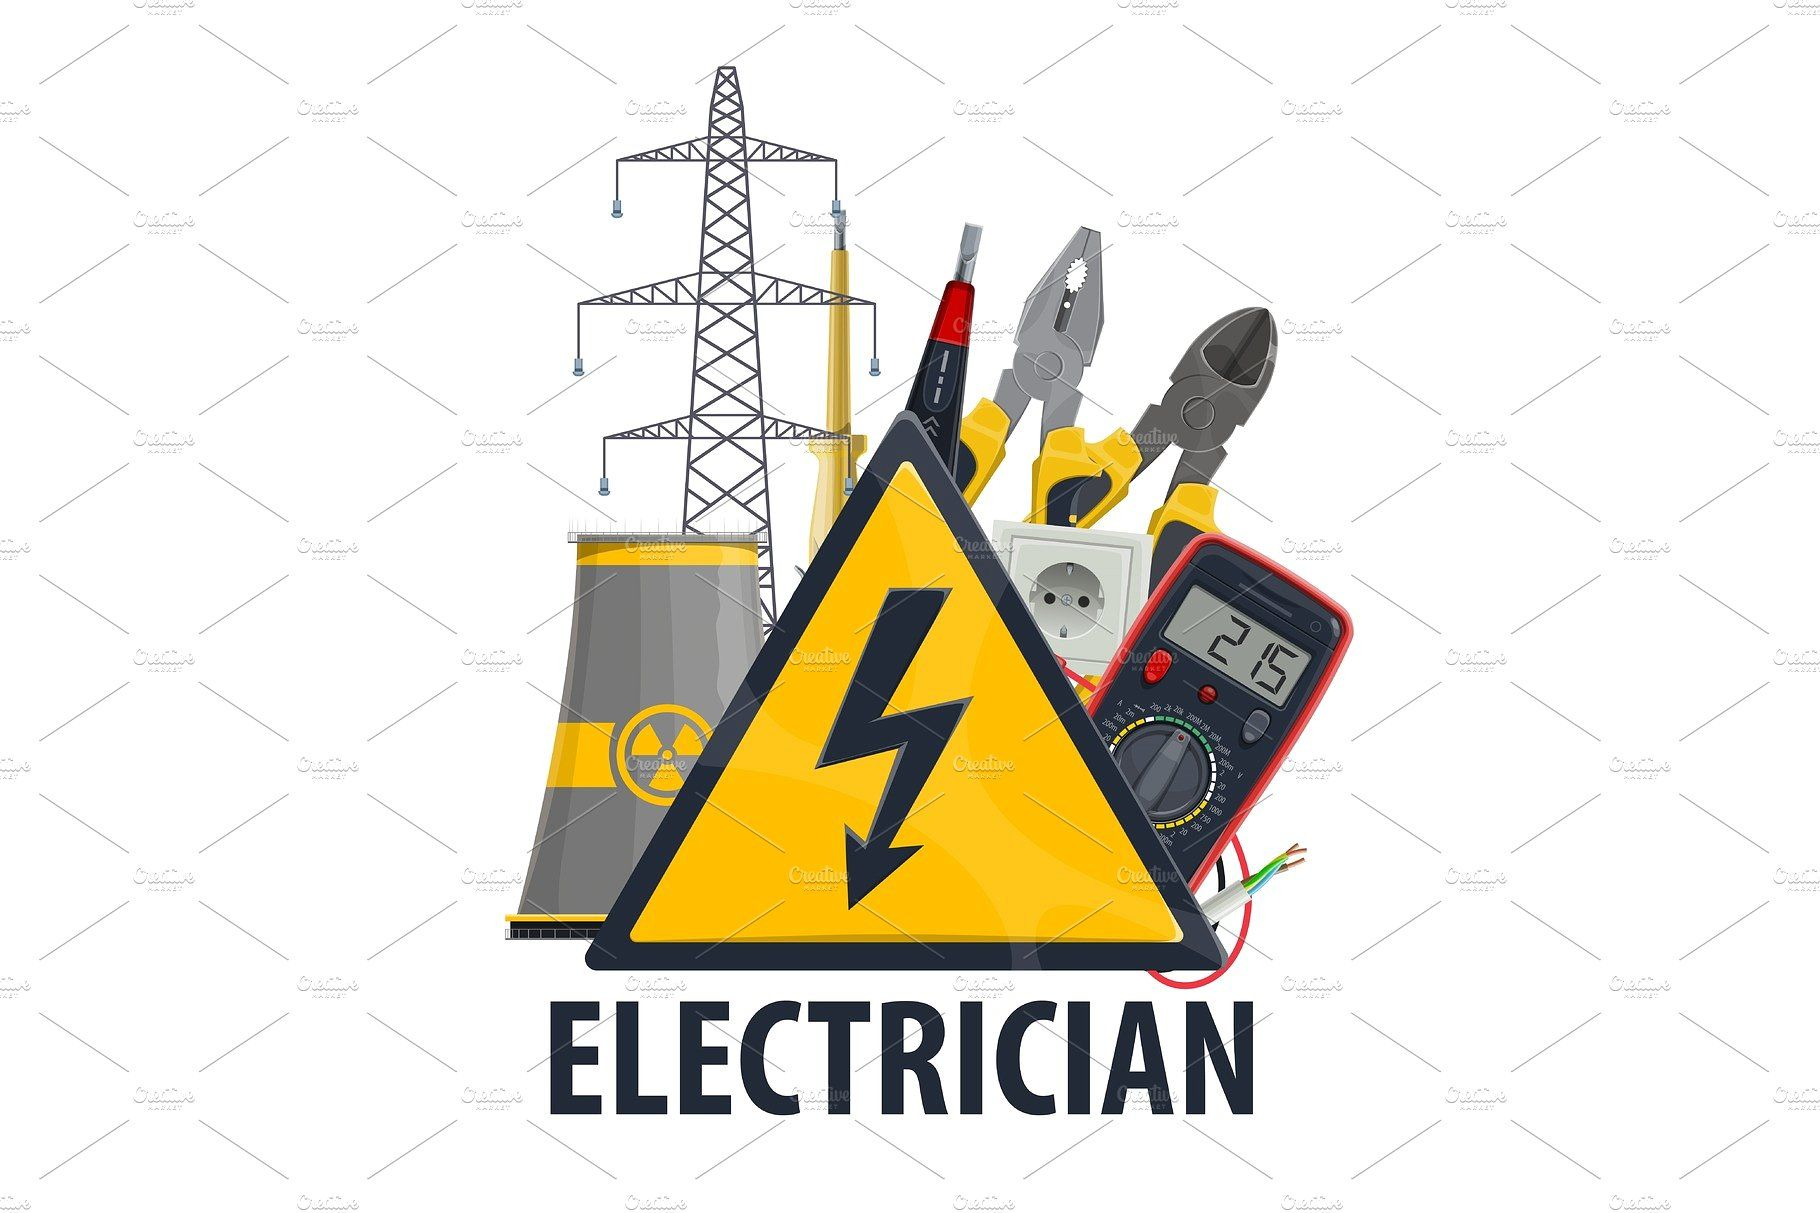 Electricity And Electric Engineering Electrical Engineering Electrical Engineering Technology Electricity